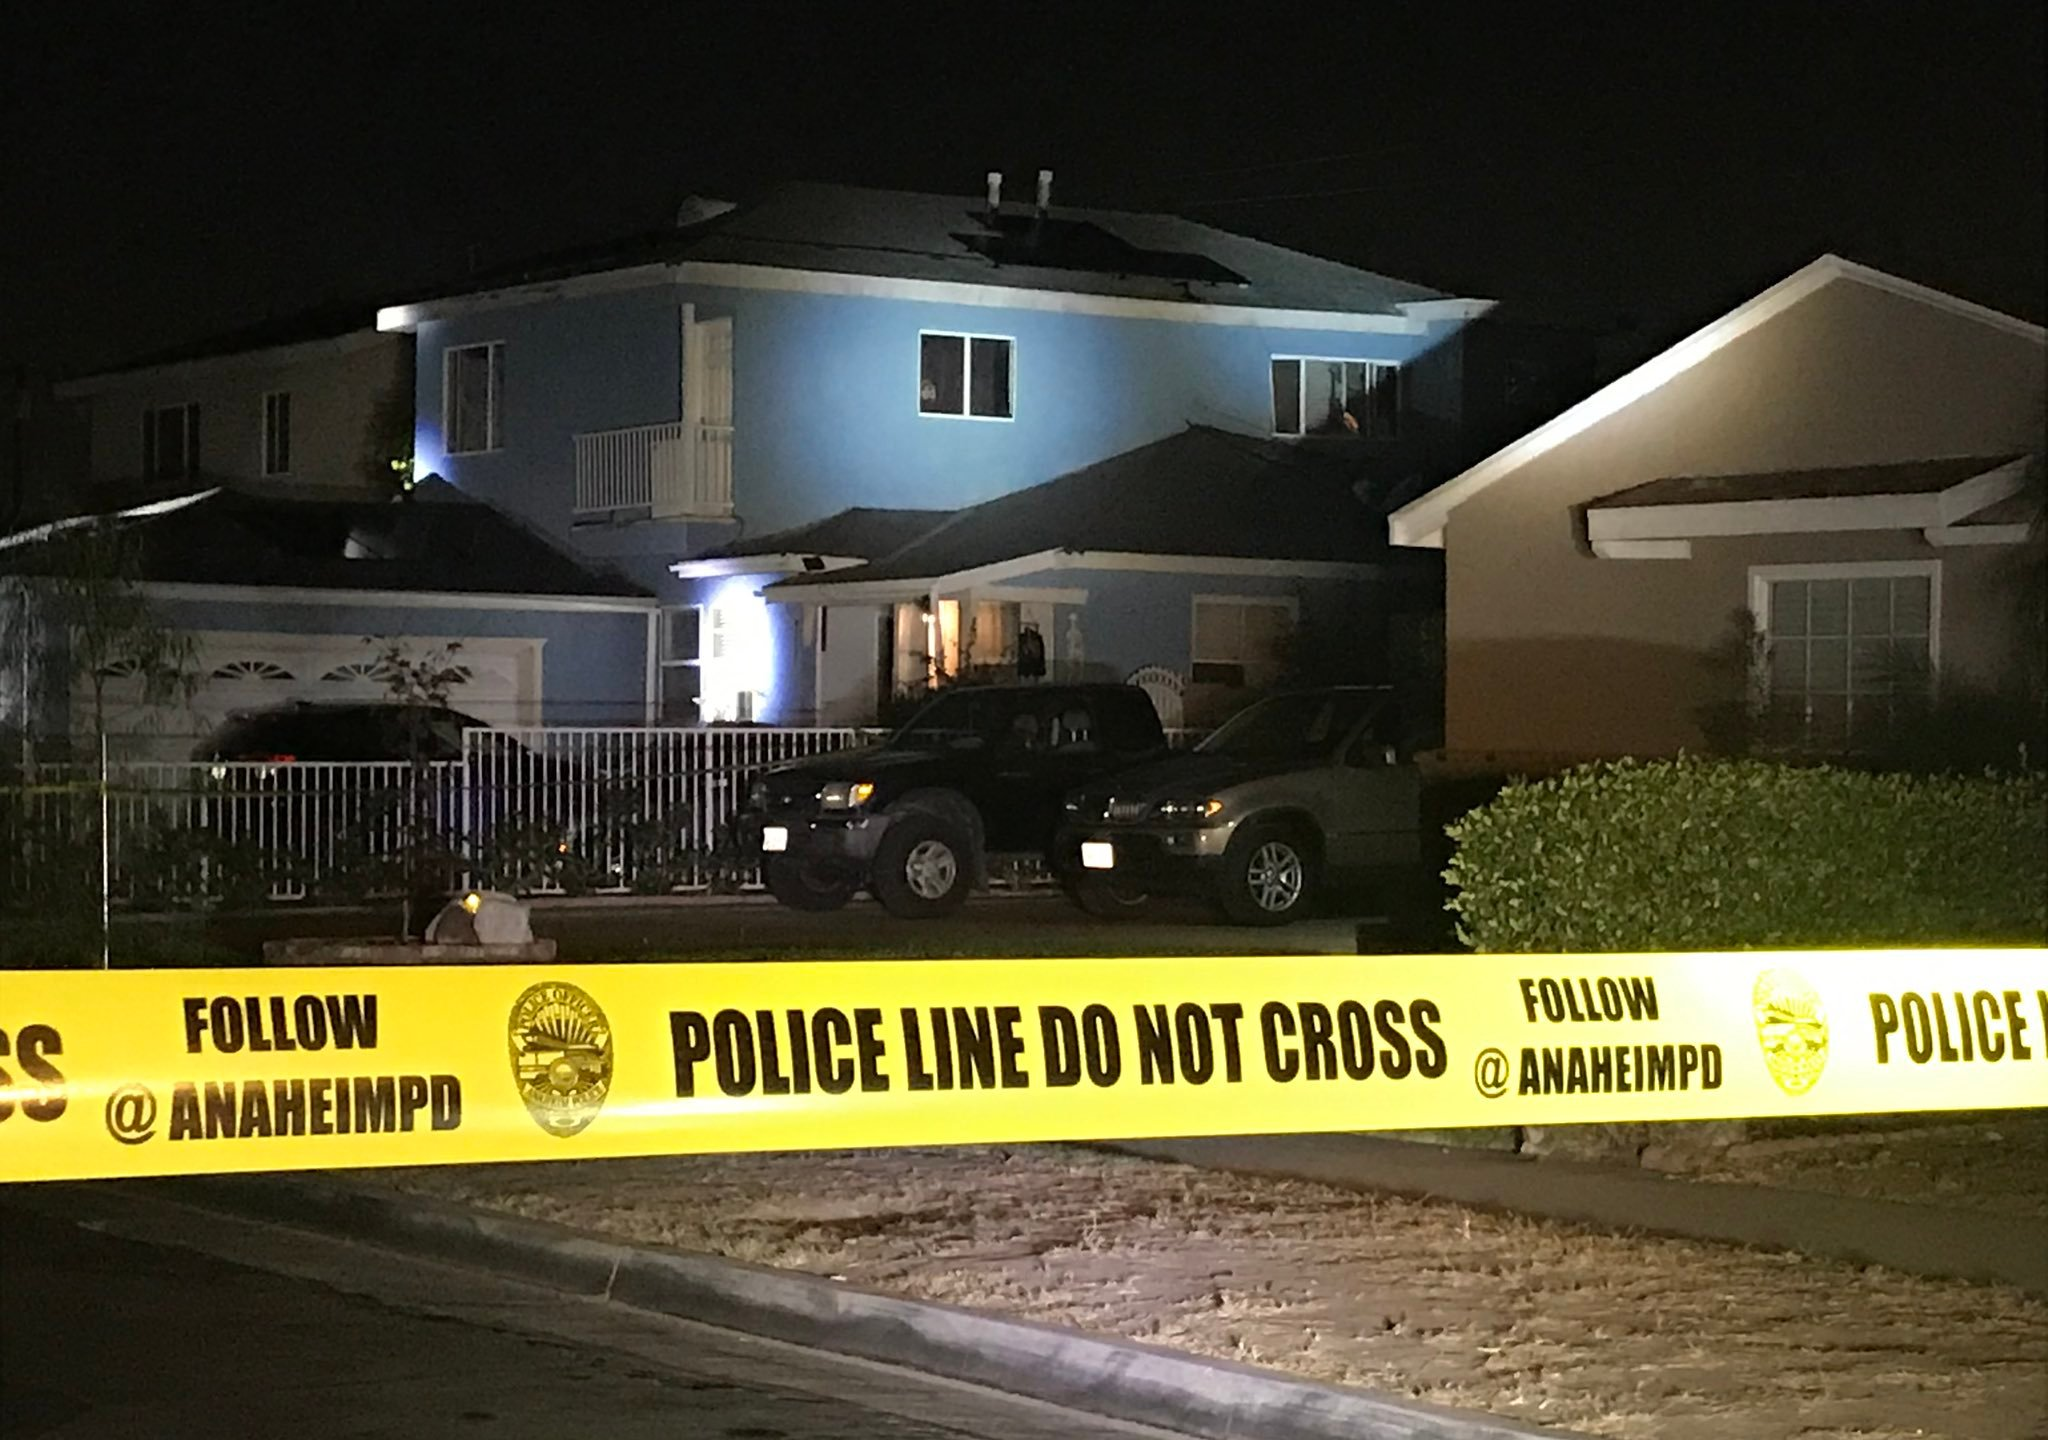 A residential area in Buena Park in cordoned off following an Anaheim police shooting on Nov. 13, 2020, in the photo shared by the Anaheim Police Department.